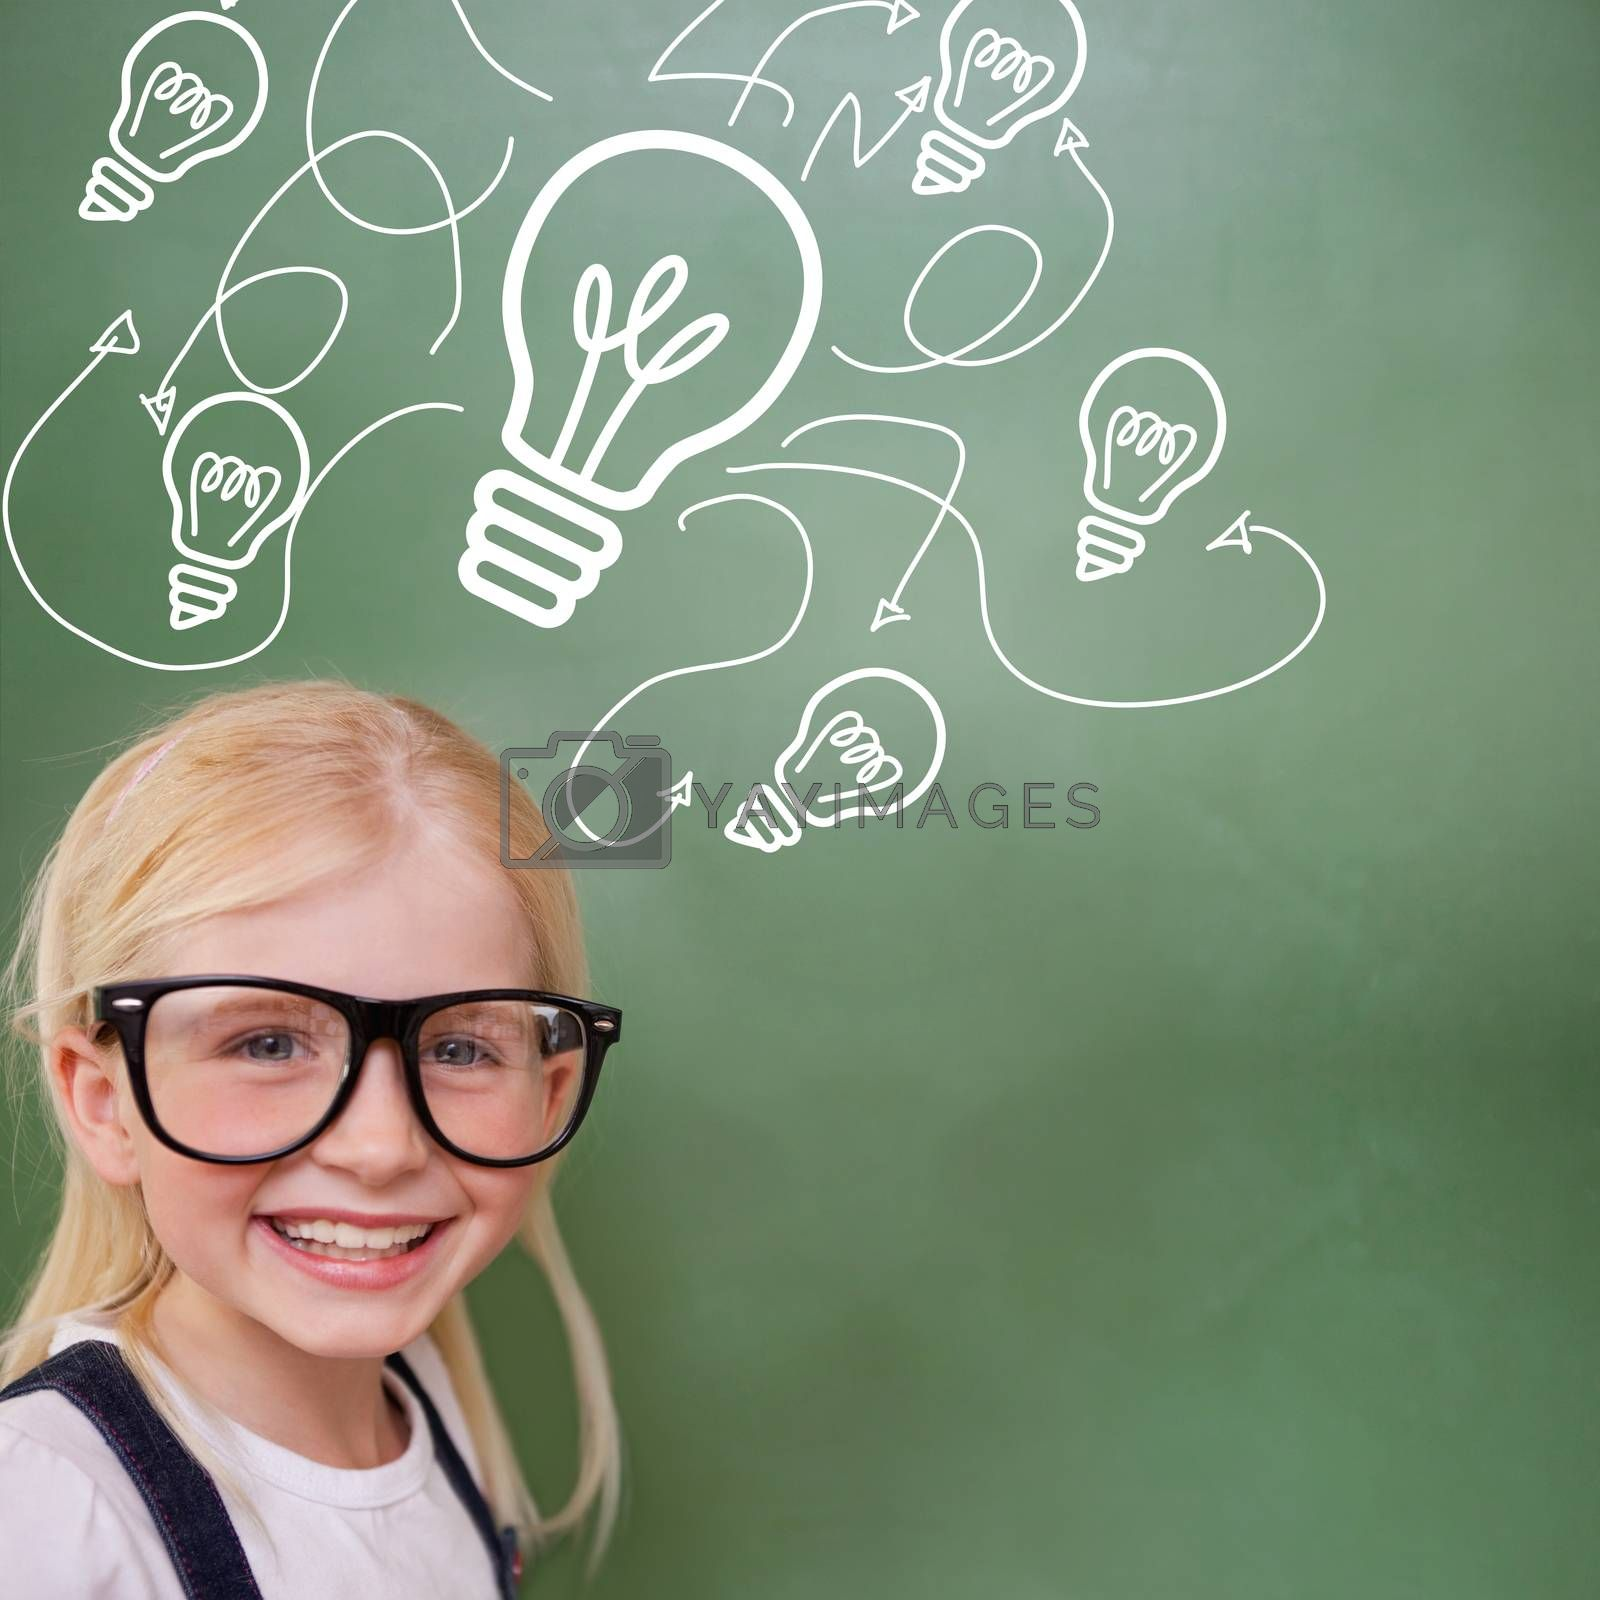 Cute pupil smiling against idea and innovation graphic